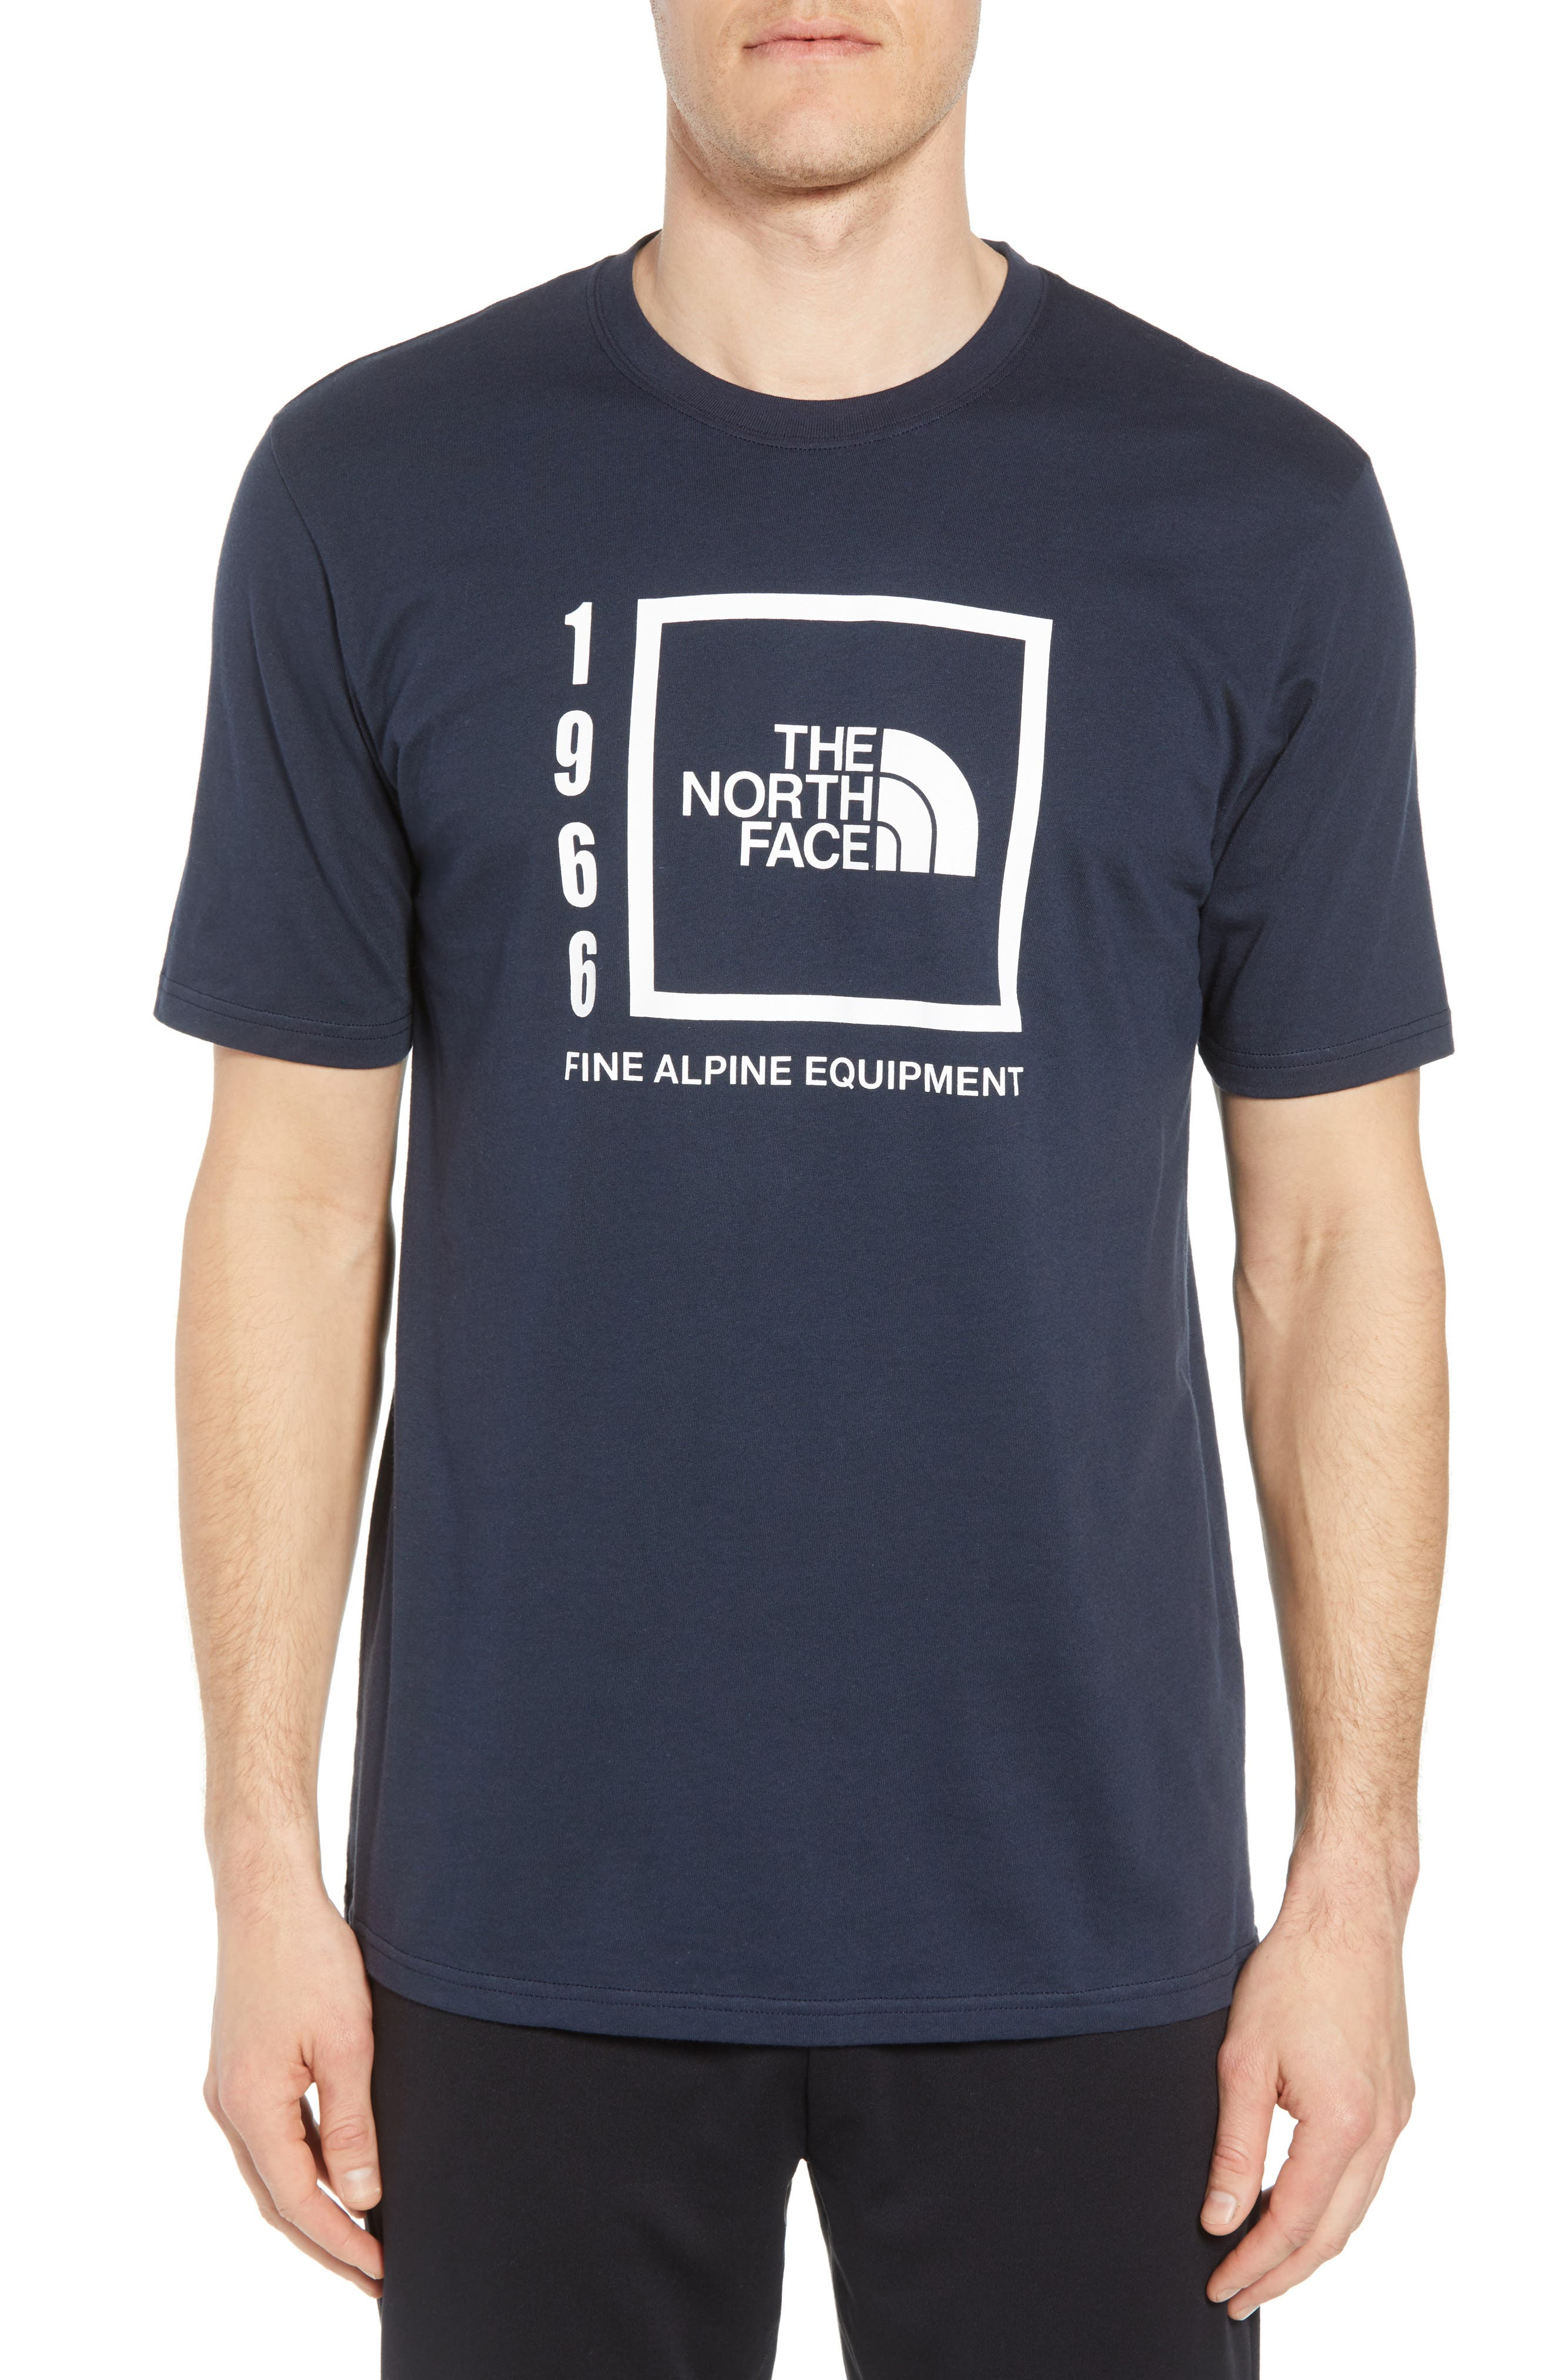 Alternate Image 1 Selected - The North Face 1966 Box Crewneck Cotton T-Shirt